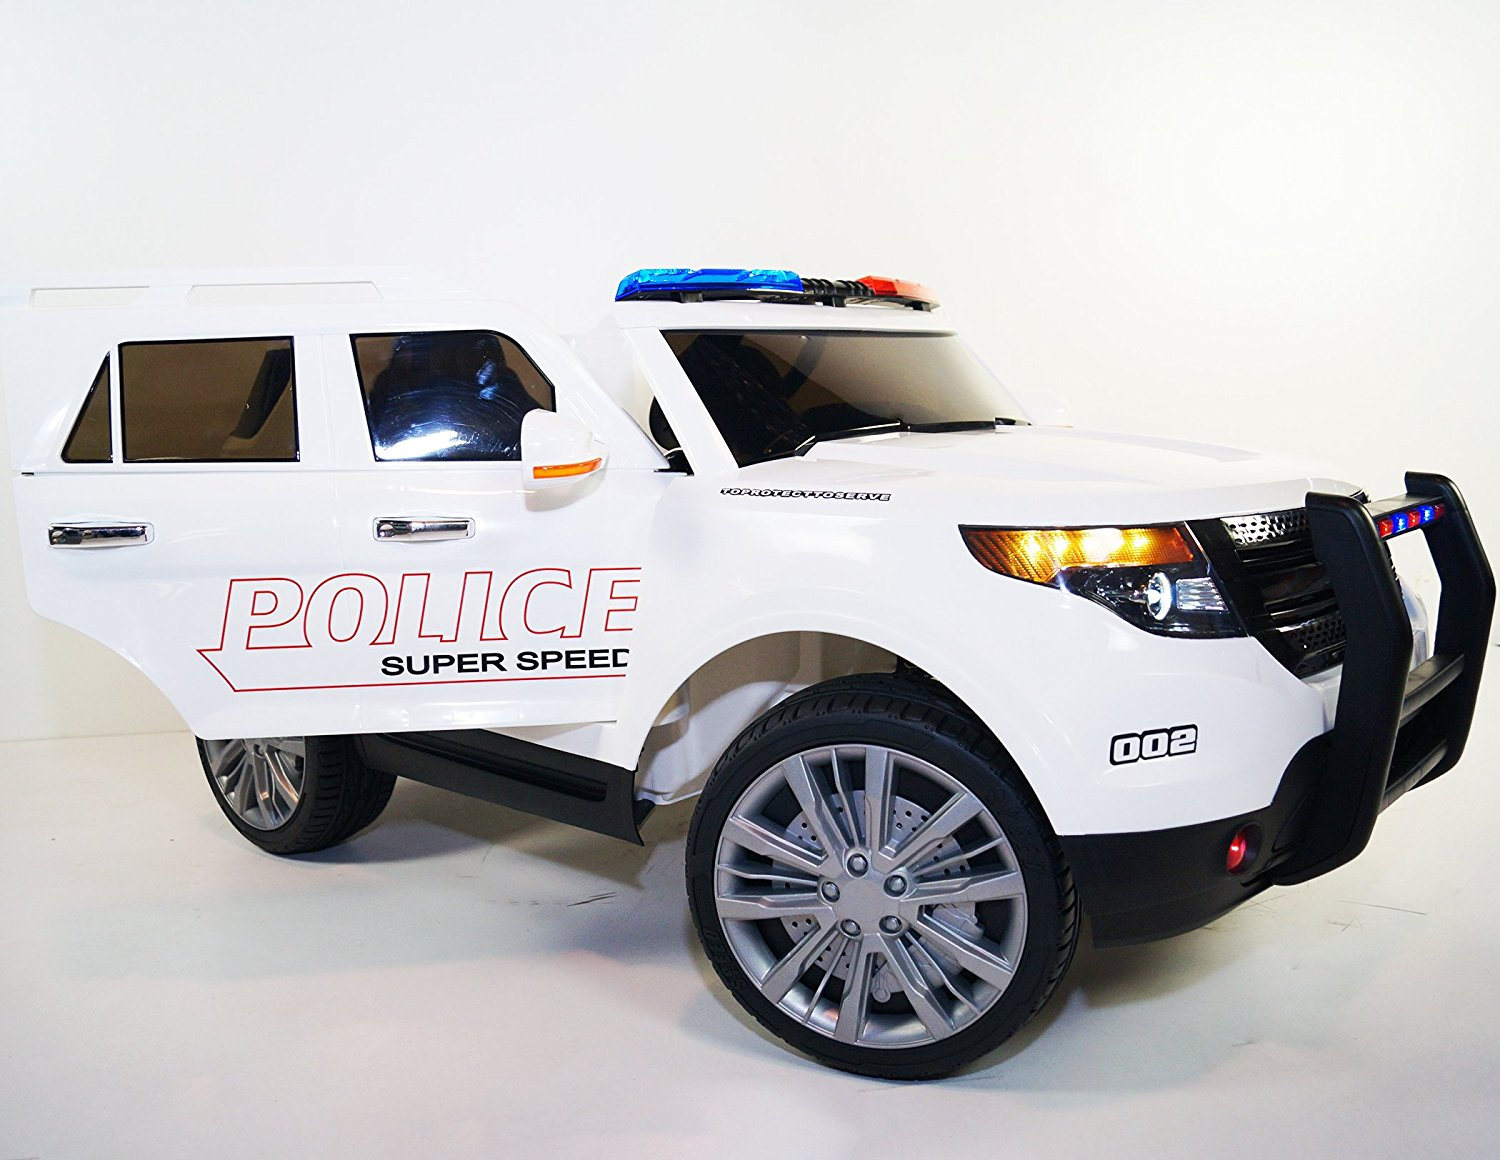 d93d9f6eb9c9 Ride on POLICE style car. Two Electric motor. Battery operated. Police car  jeep